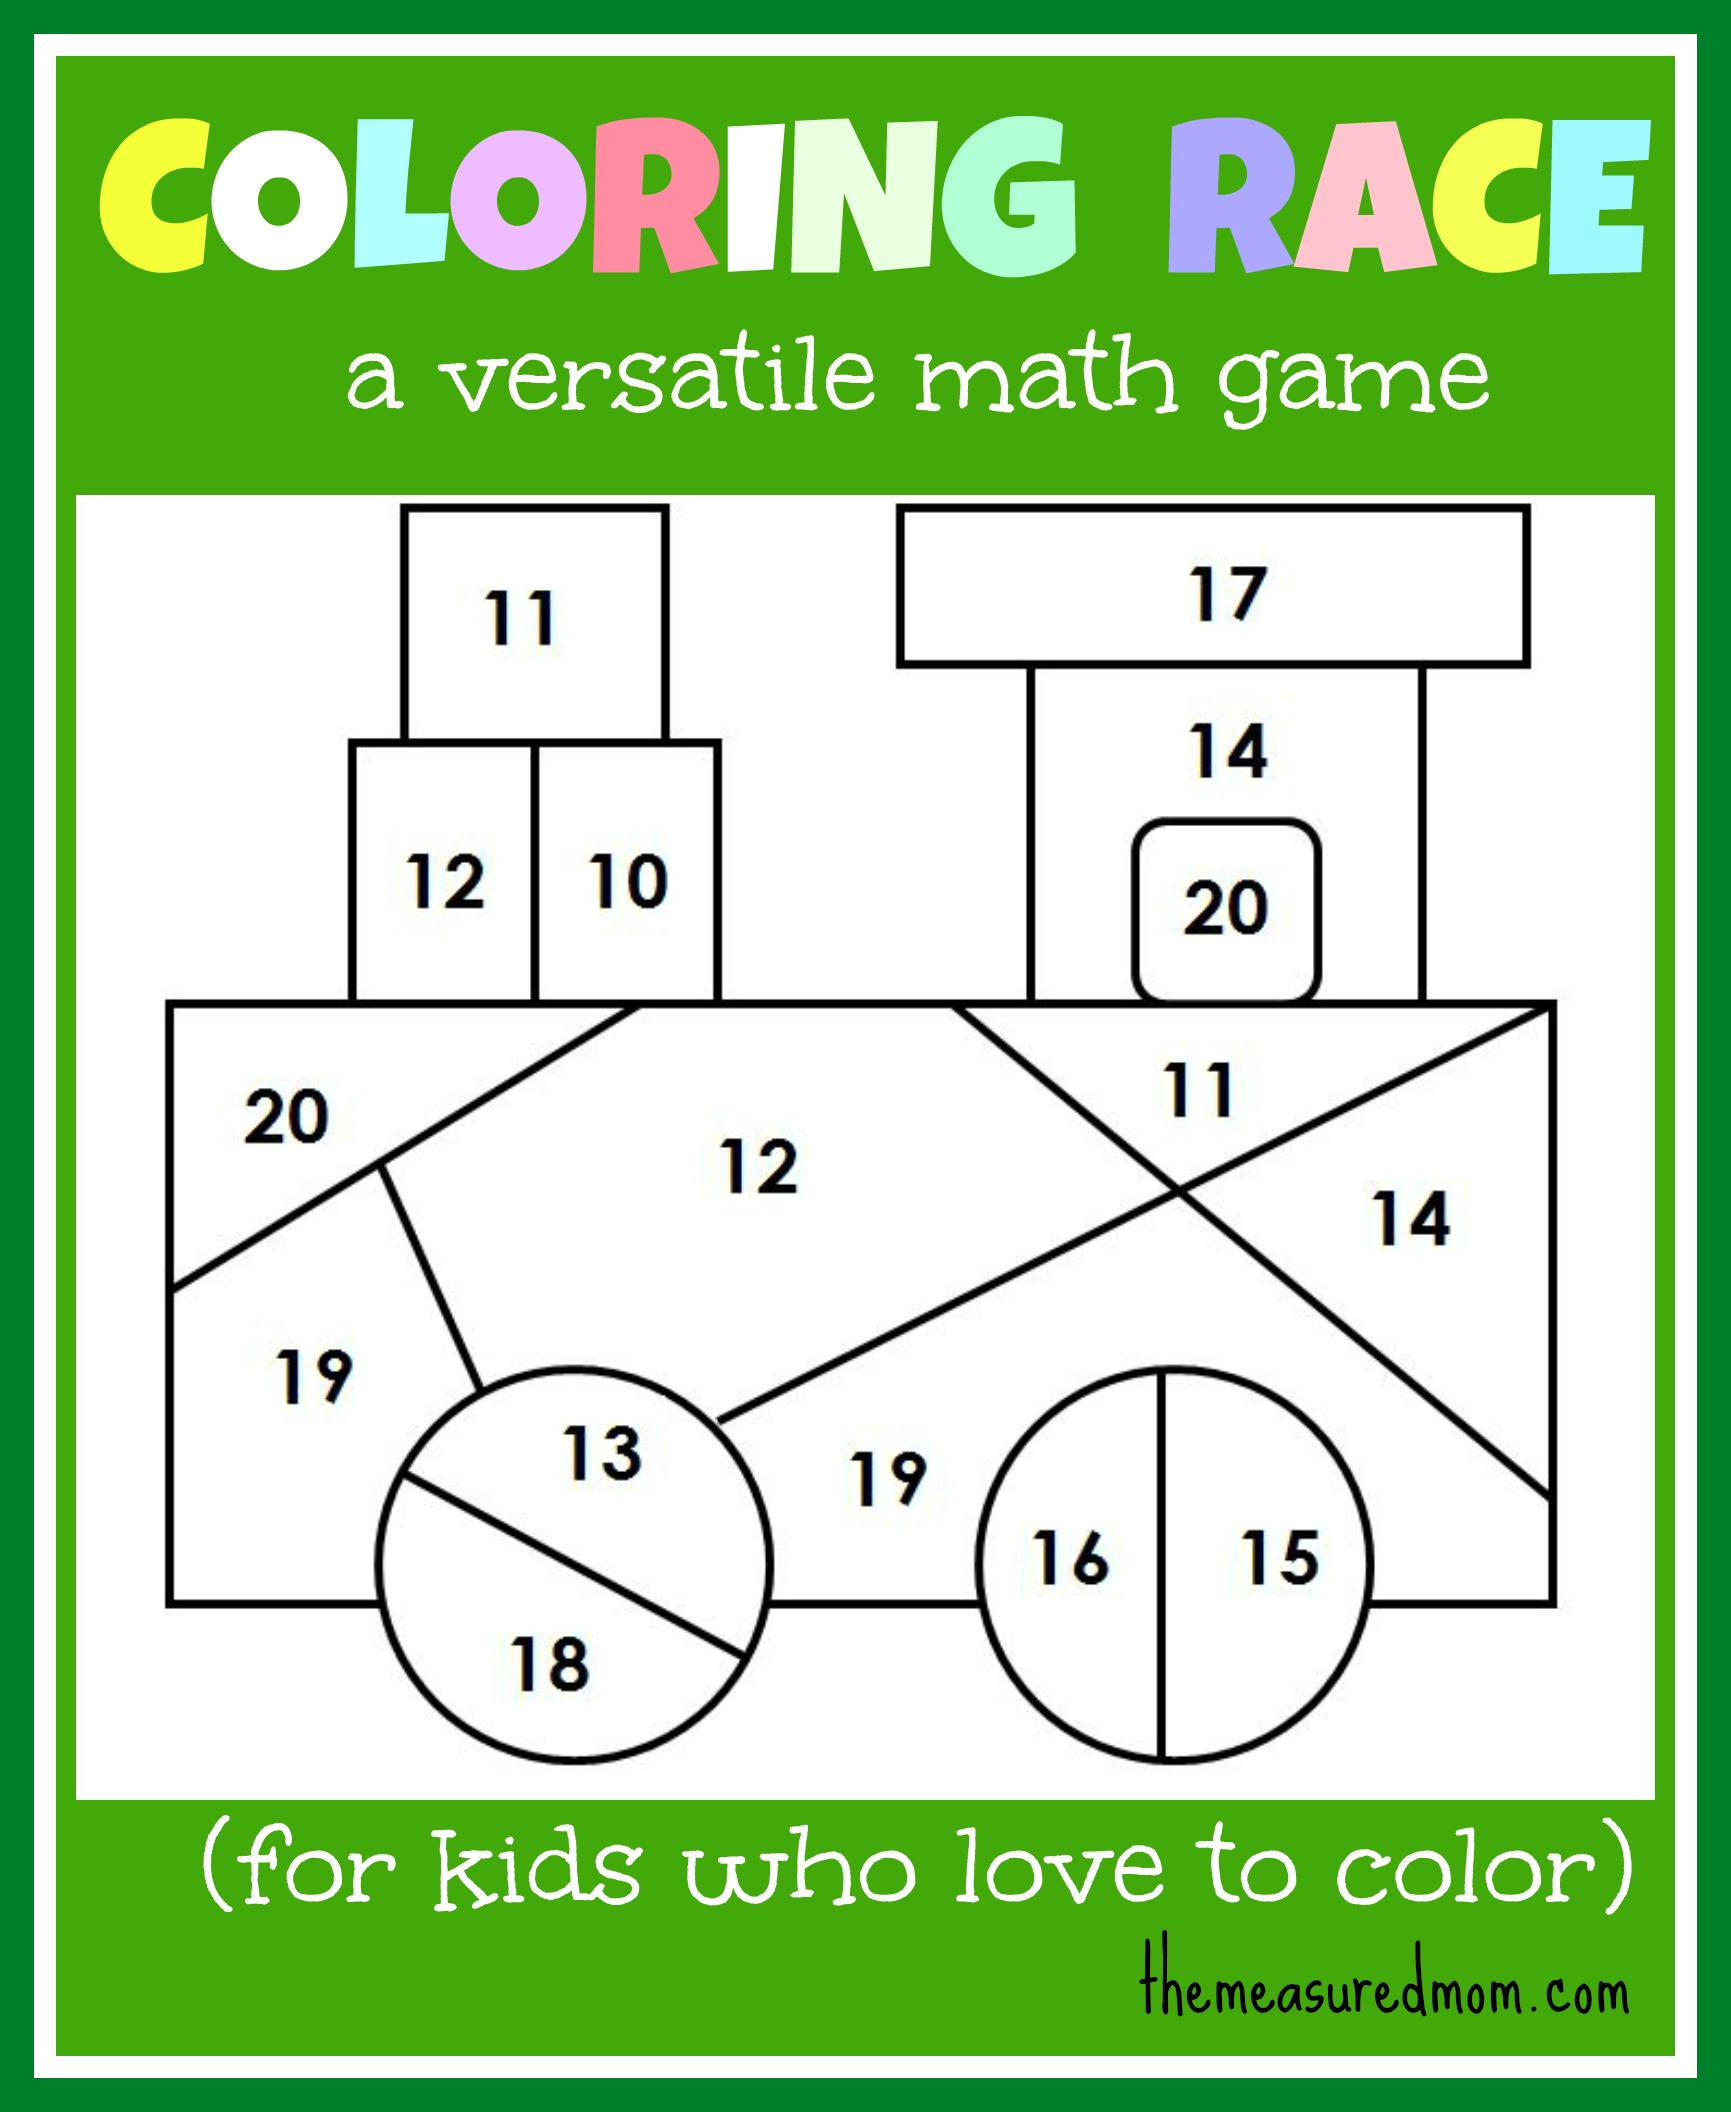 Math Game For Kids Coloring Race Combines Math And